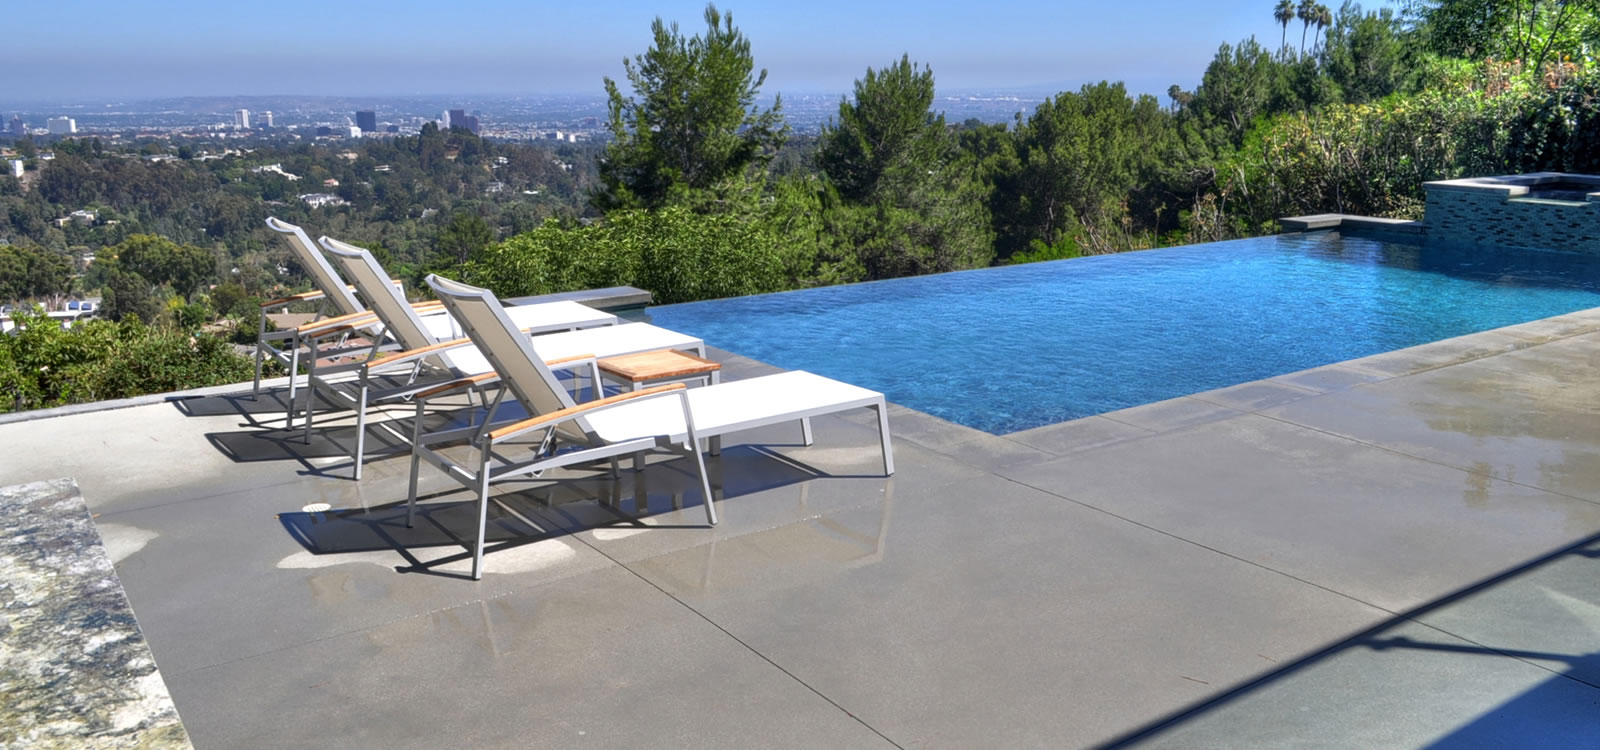 Los Angeles Vanishing Edge Pool Design W/ Elevated Spa Custom Tile